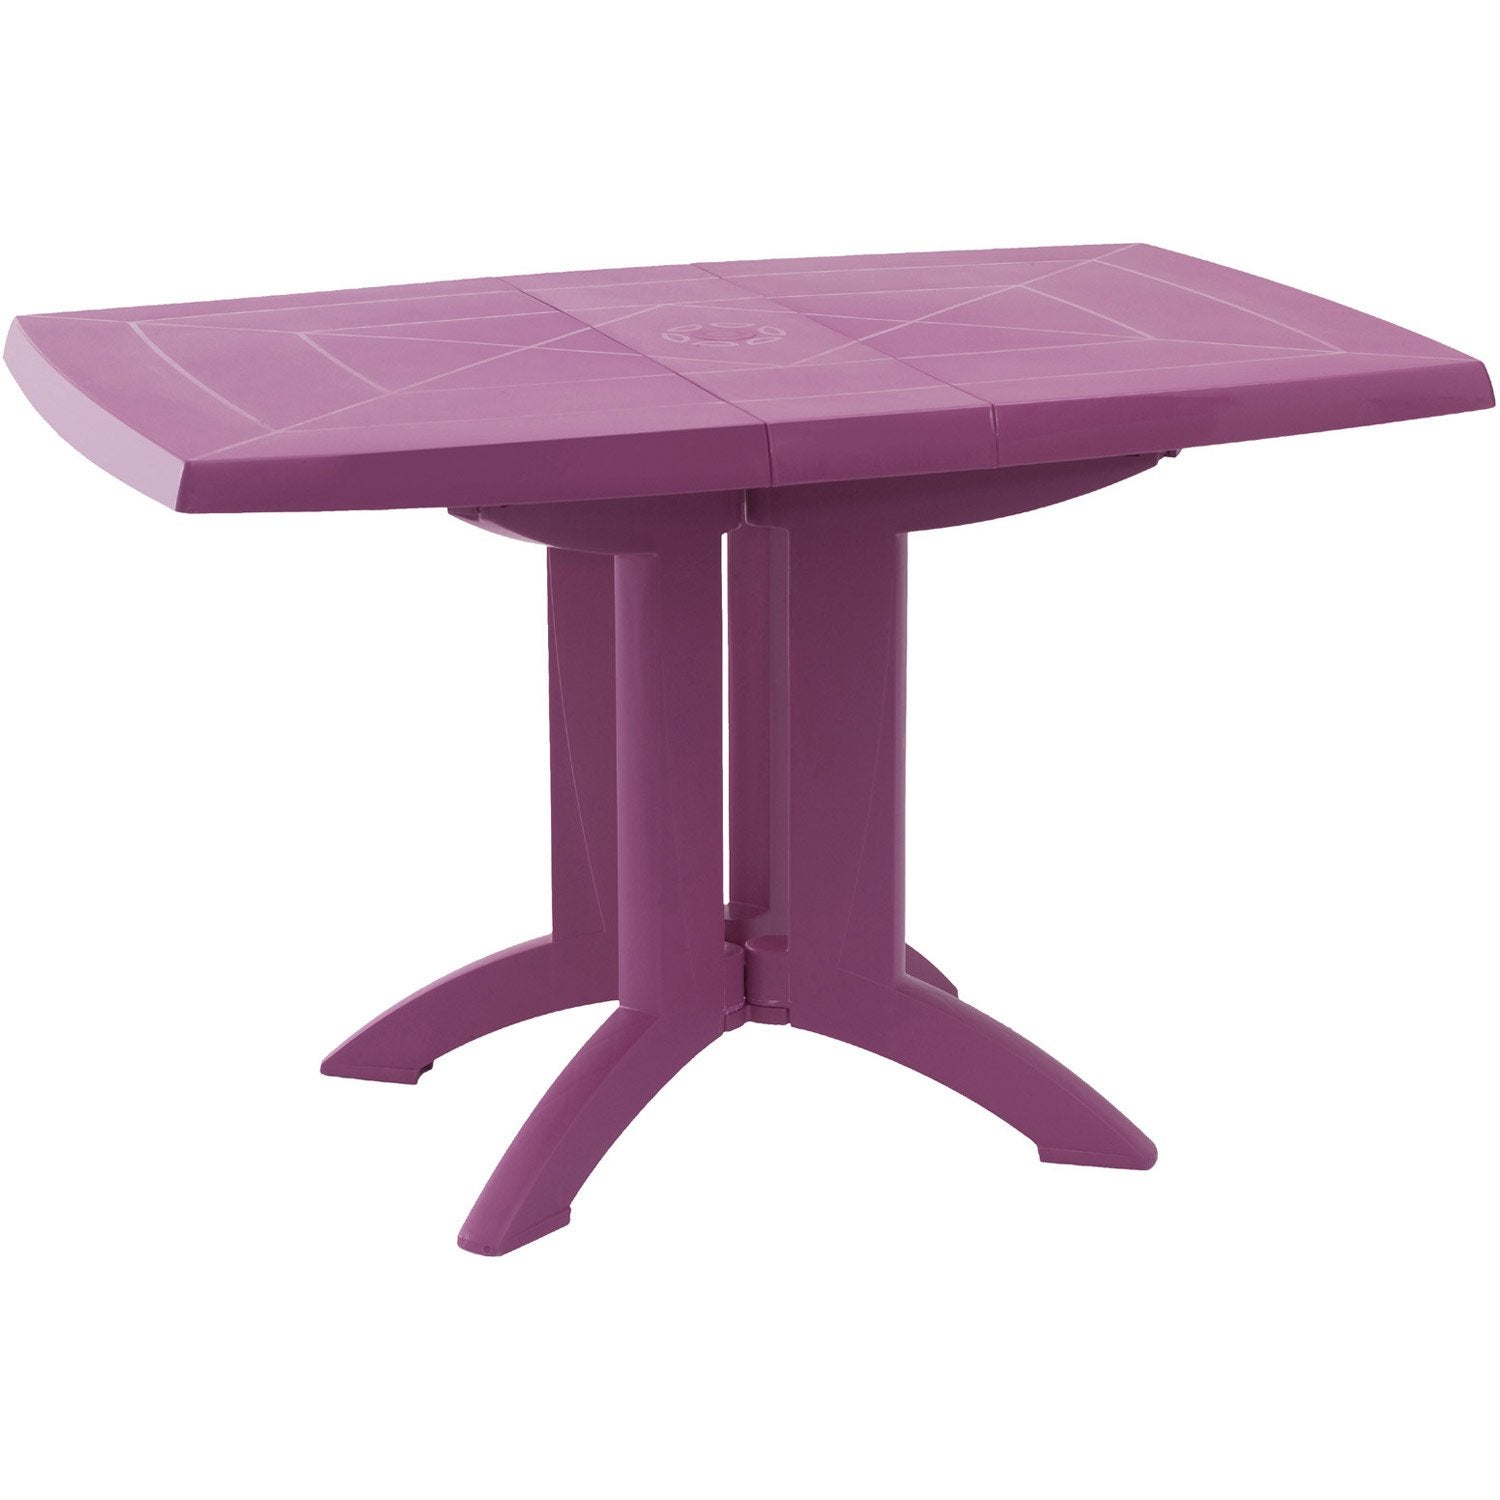 Table jardin 4 personnes maison design for Table jardin